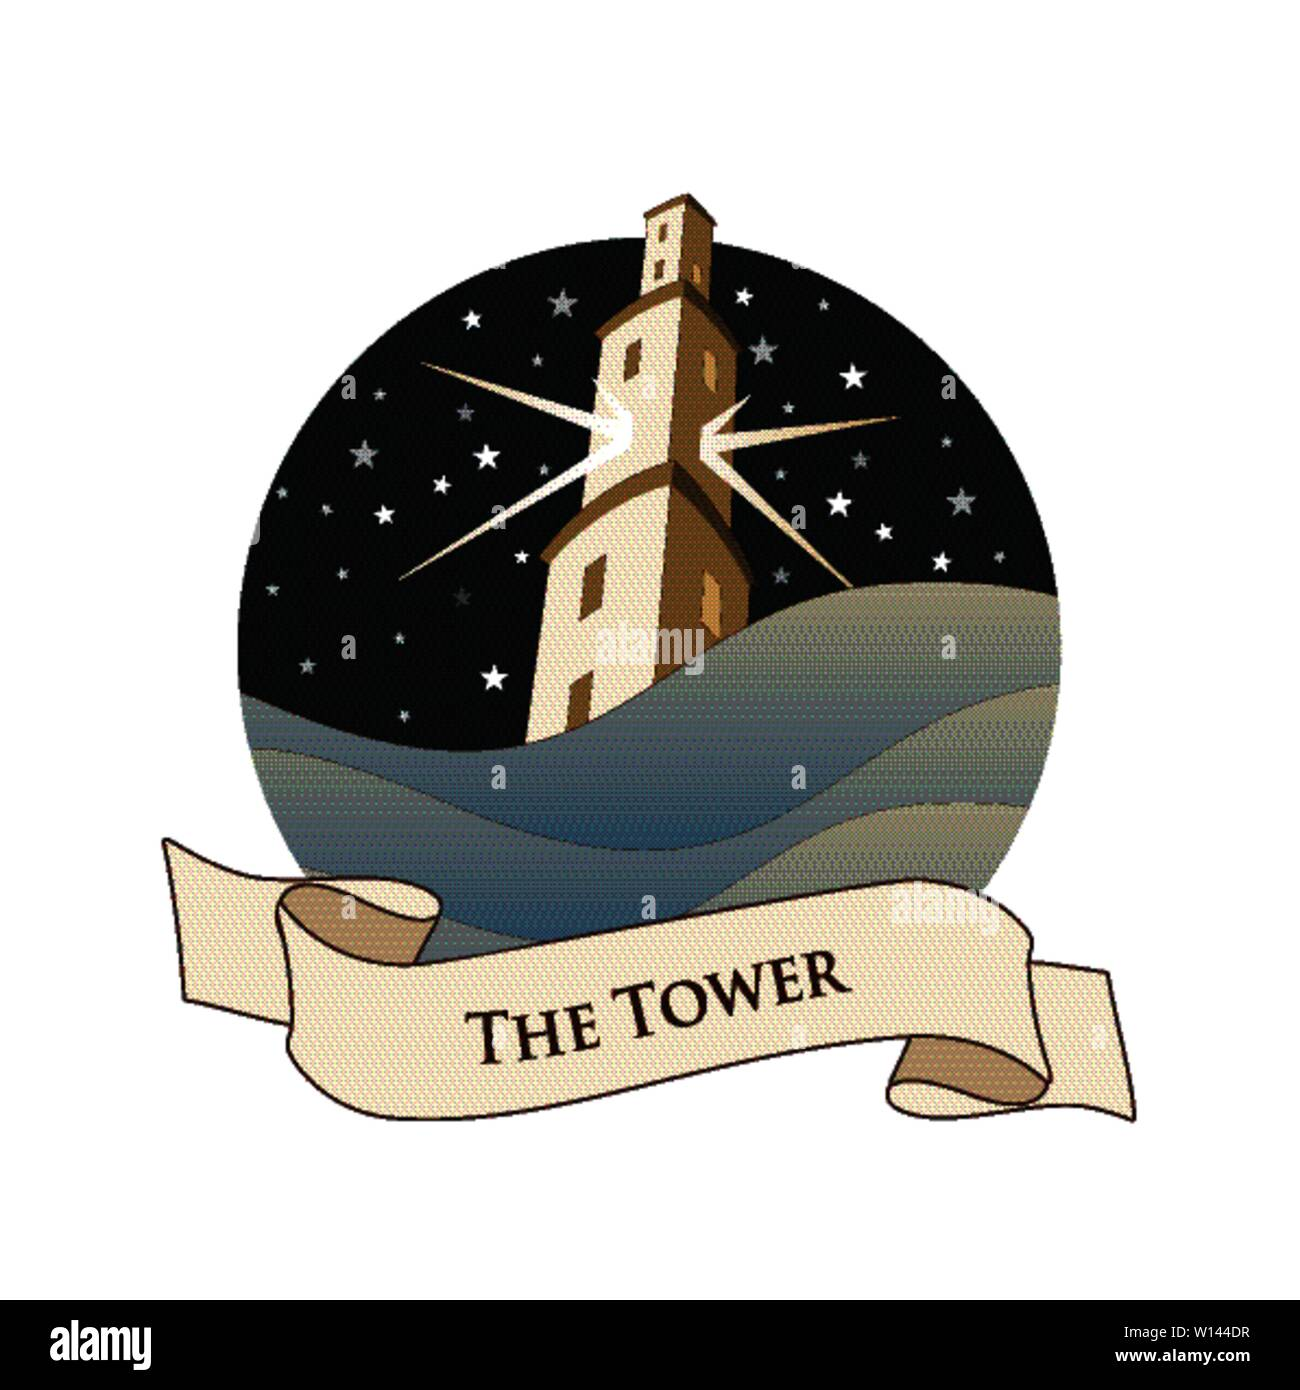 Major Arcana Emblem Tarot Card. The Tower. Large tower over raging sea, over a starry night sky, isolated on white background Stock Vector